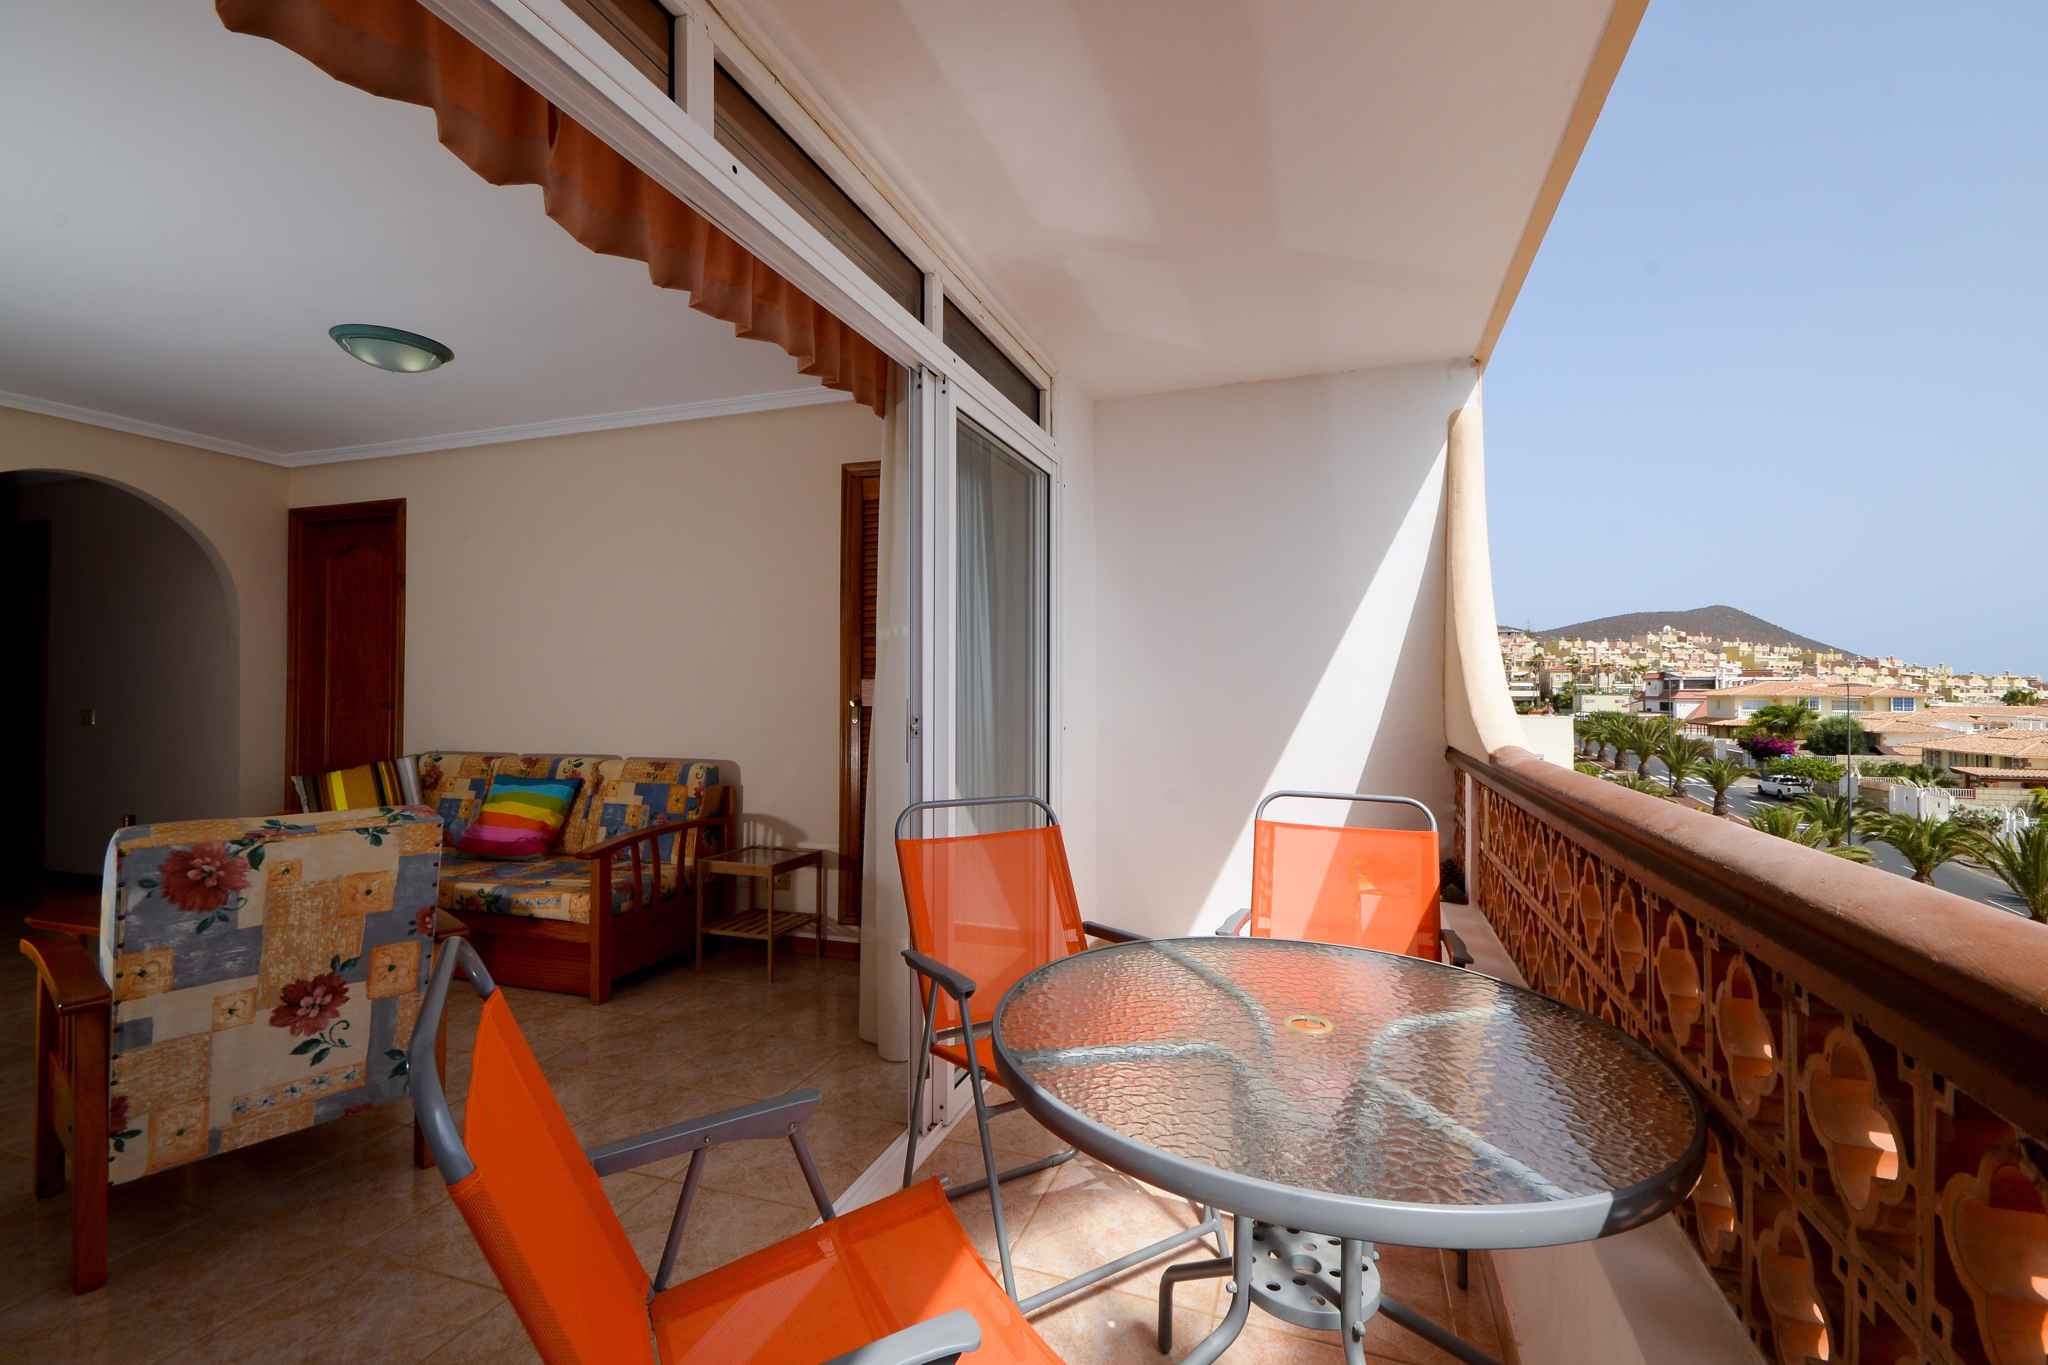 Holiday apartment mit Meerblick und Wifi in Strandnähe (1685535), Palm-Mar, Tenerife, Canary Islands, Spain, picture 8